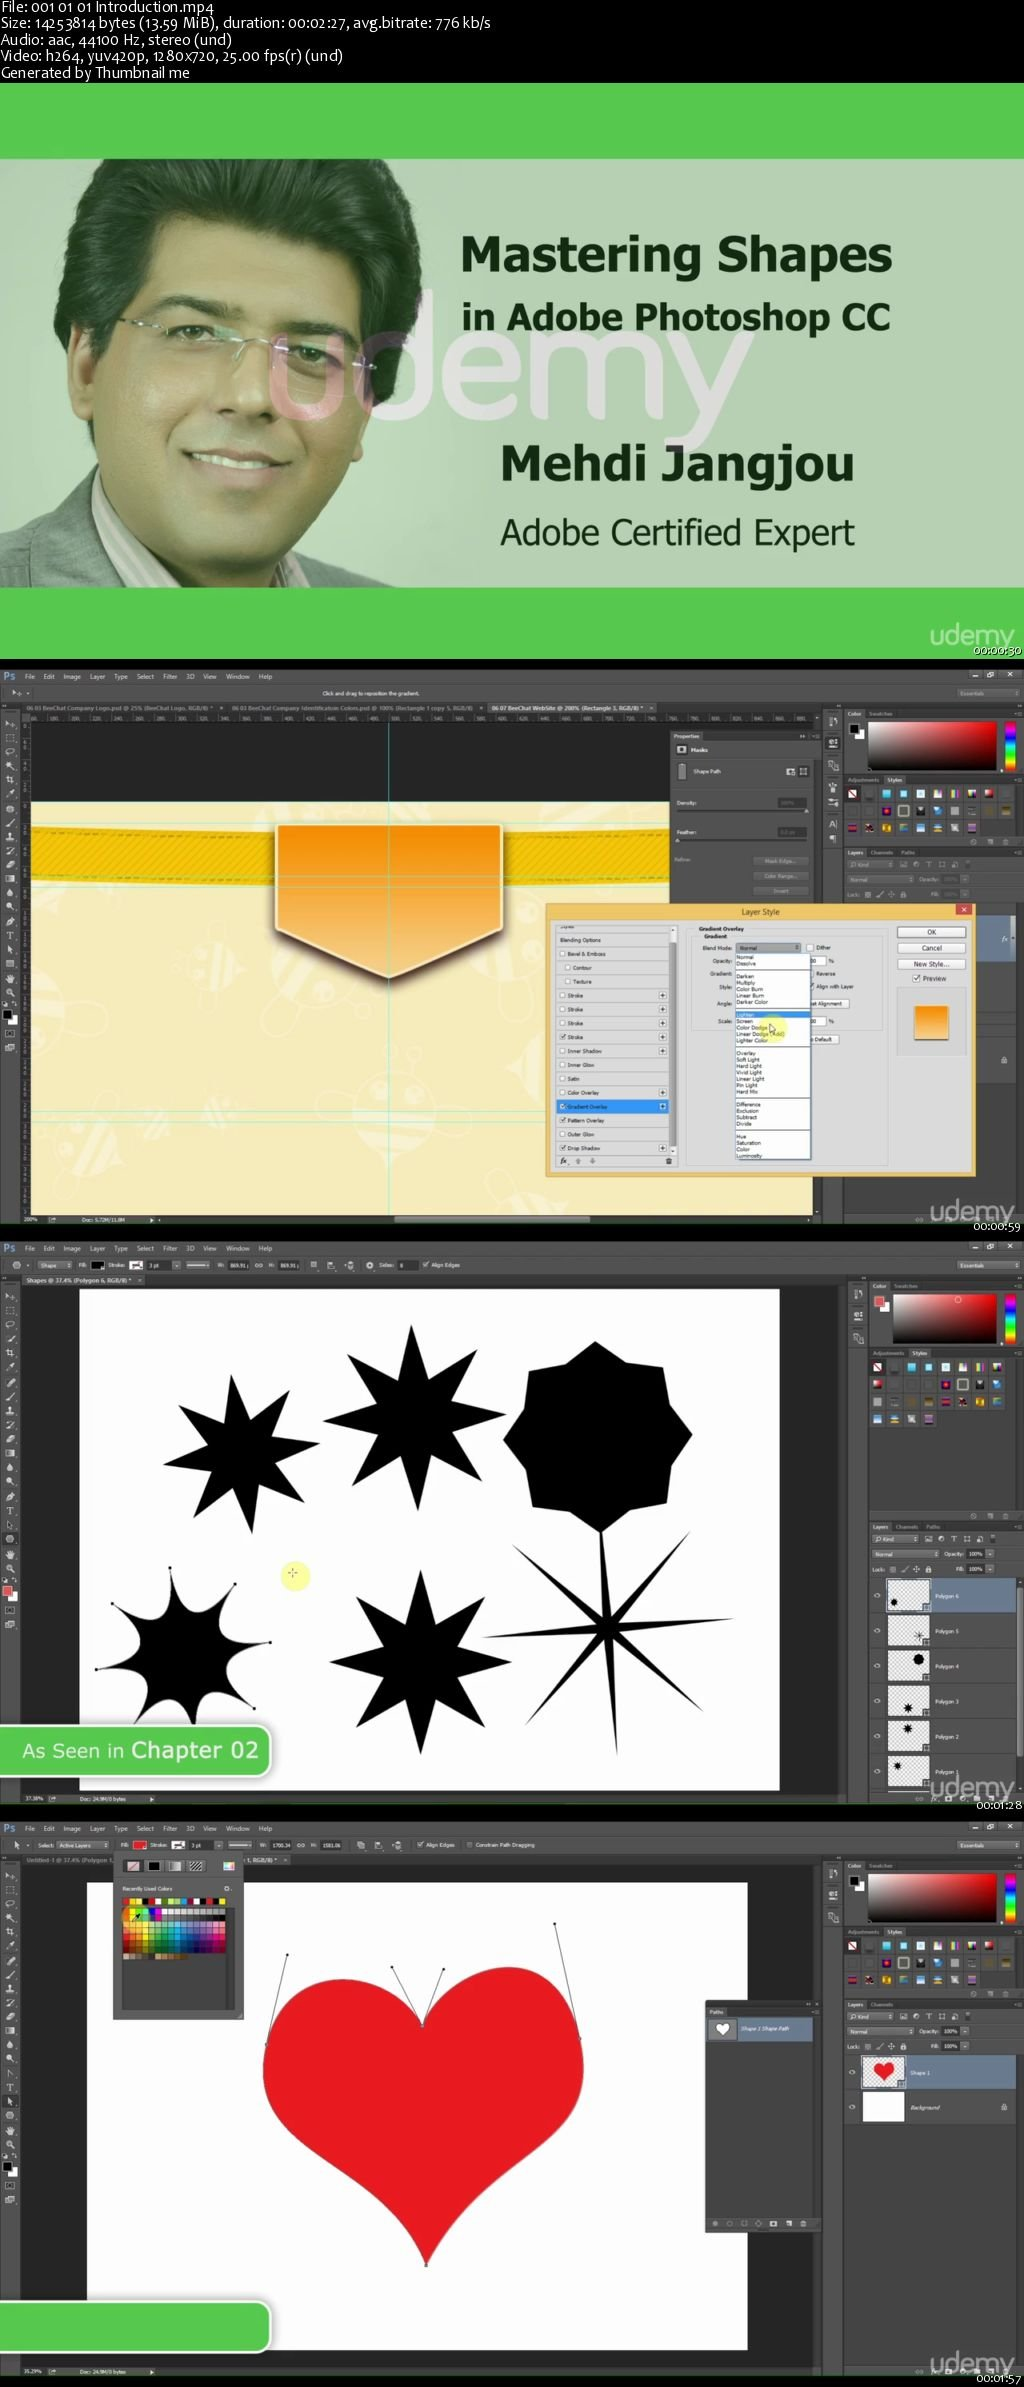 Mastering Shapes in Adobe Photoshop CC